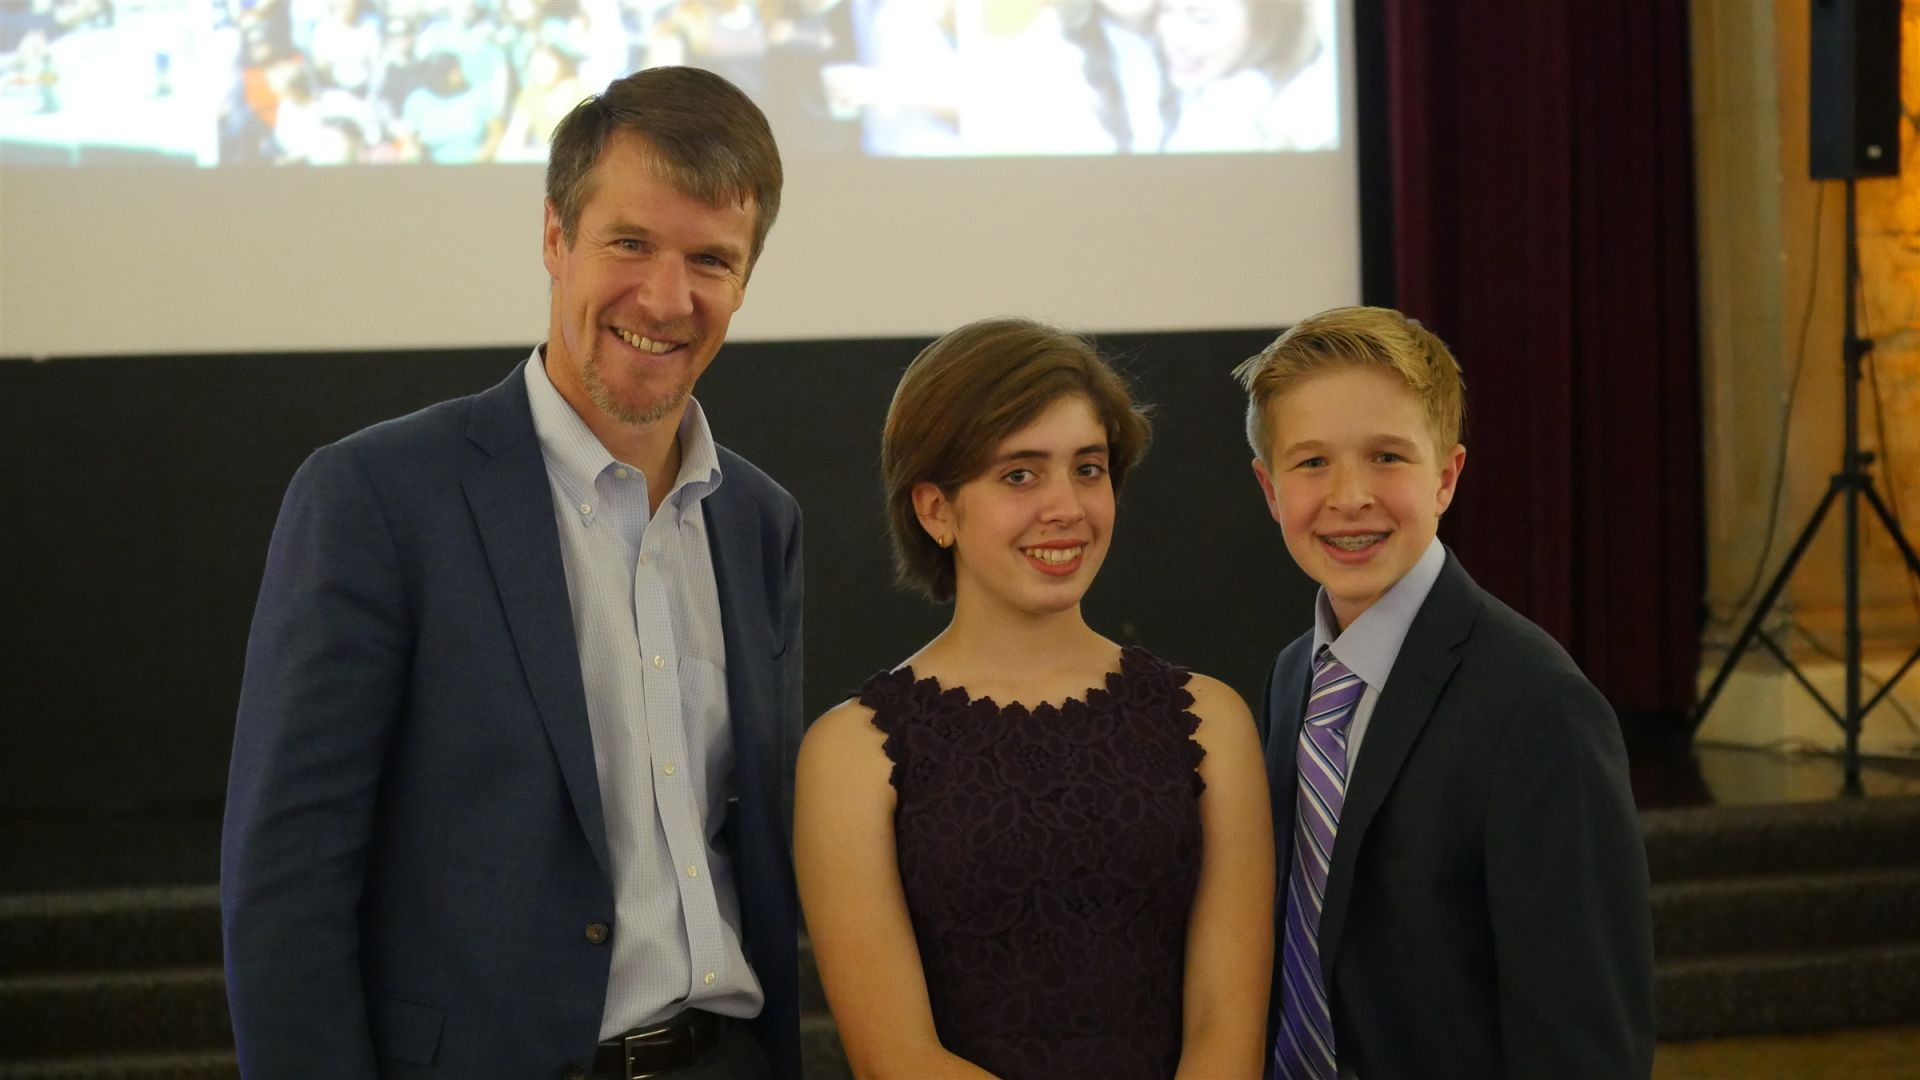 Hillbrook students Joanna and Jackson with Head of School Mark Silver at the Kiva San Jose launch party on November 1, 2017.